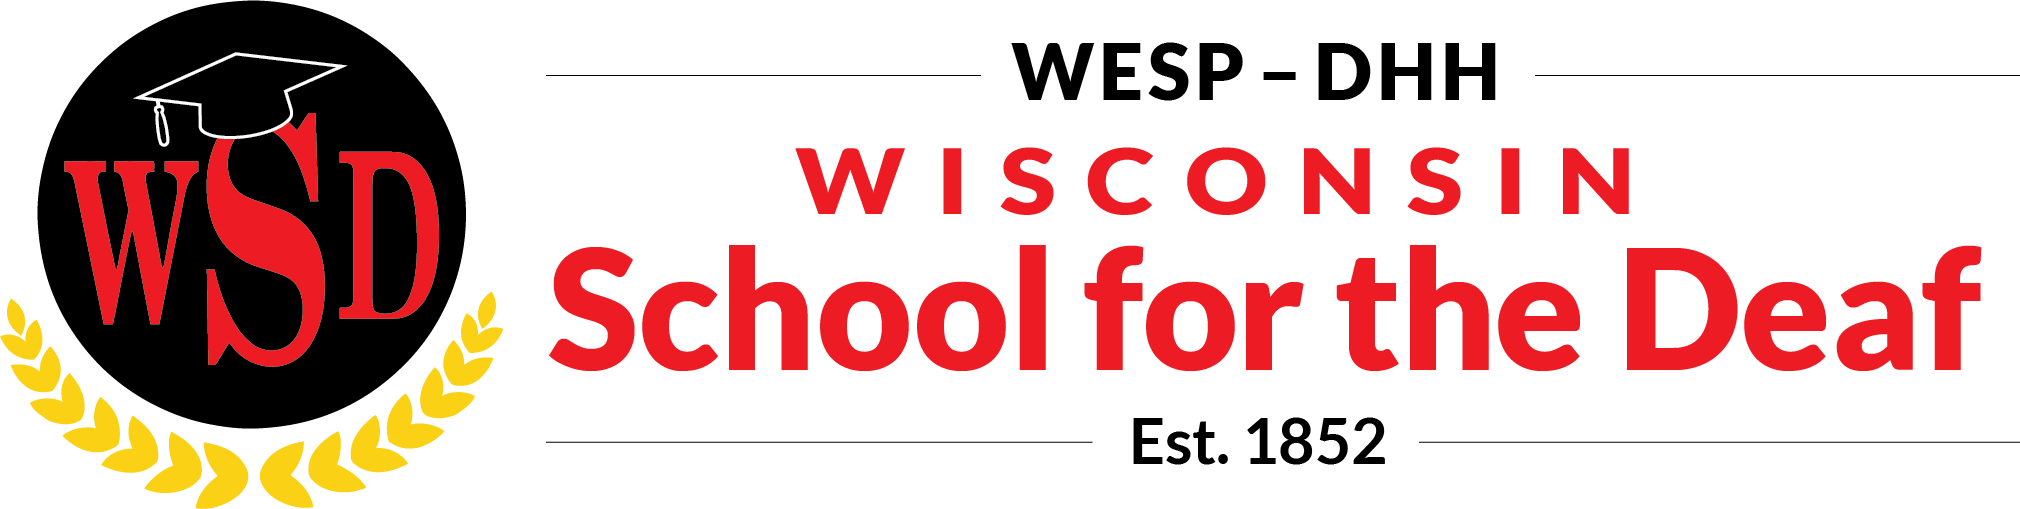 Wisconsin School for the Deaf